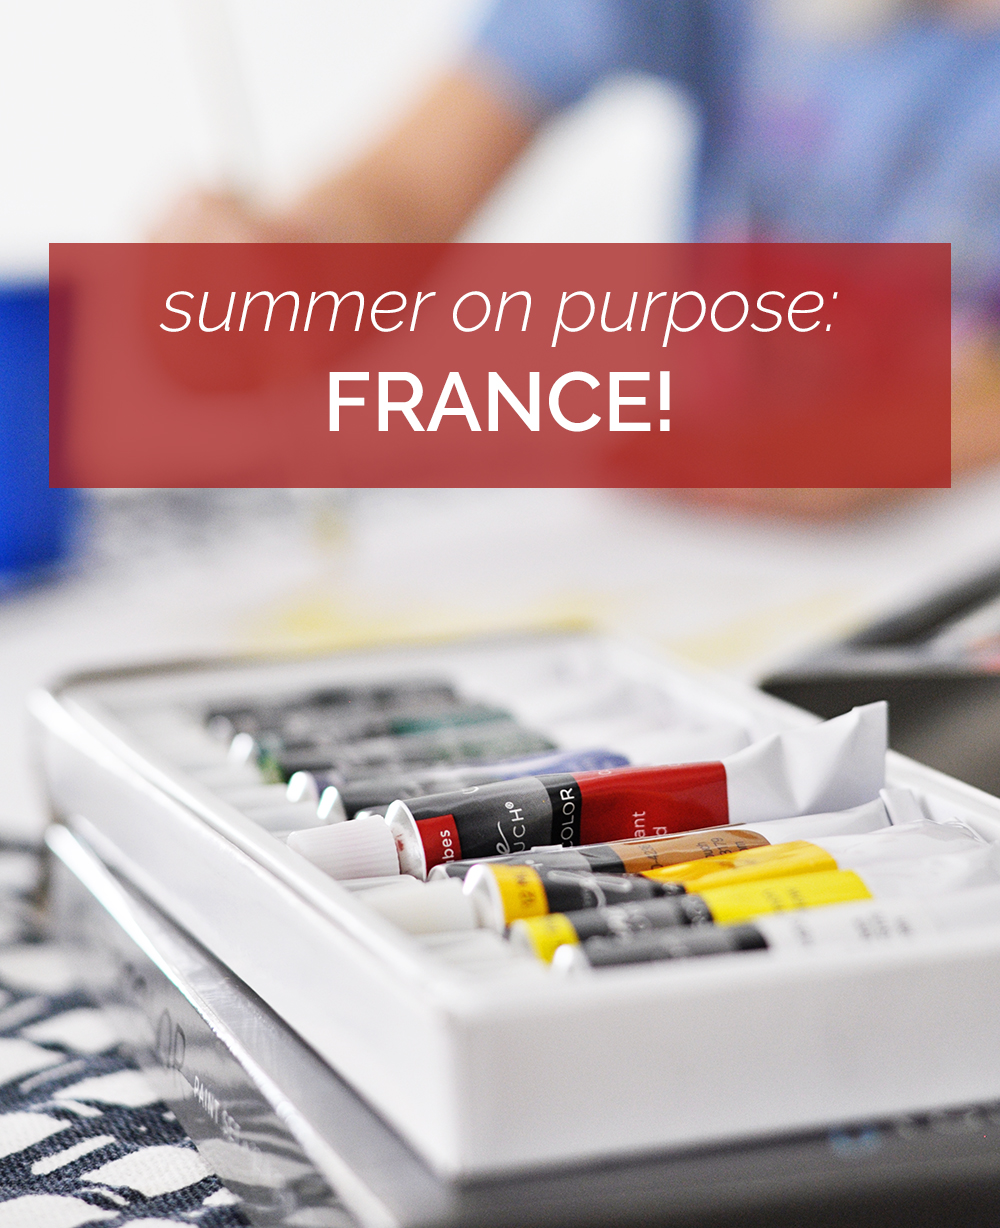 Summer on Purpose: France! We are picking one country each week to explore through books, arts, crafts, STEM projects, and other activities.